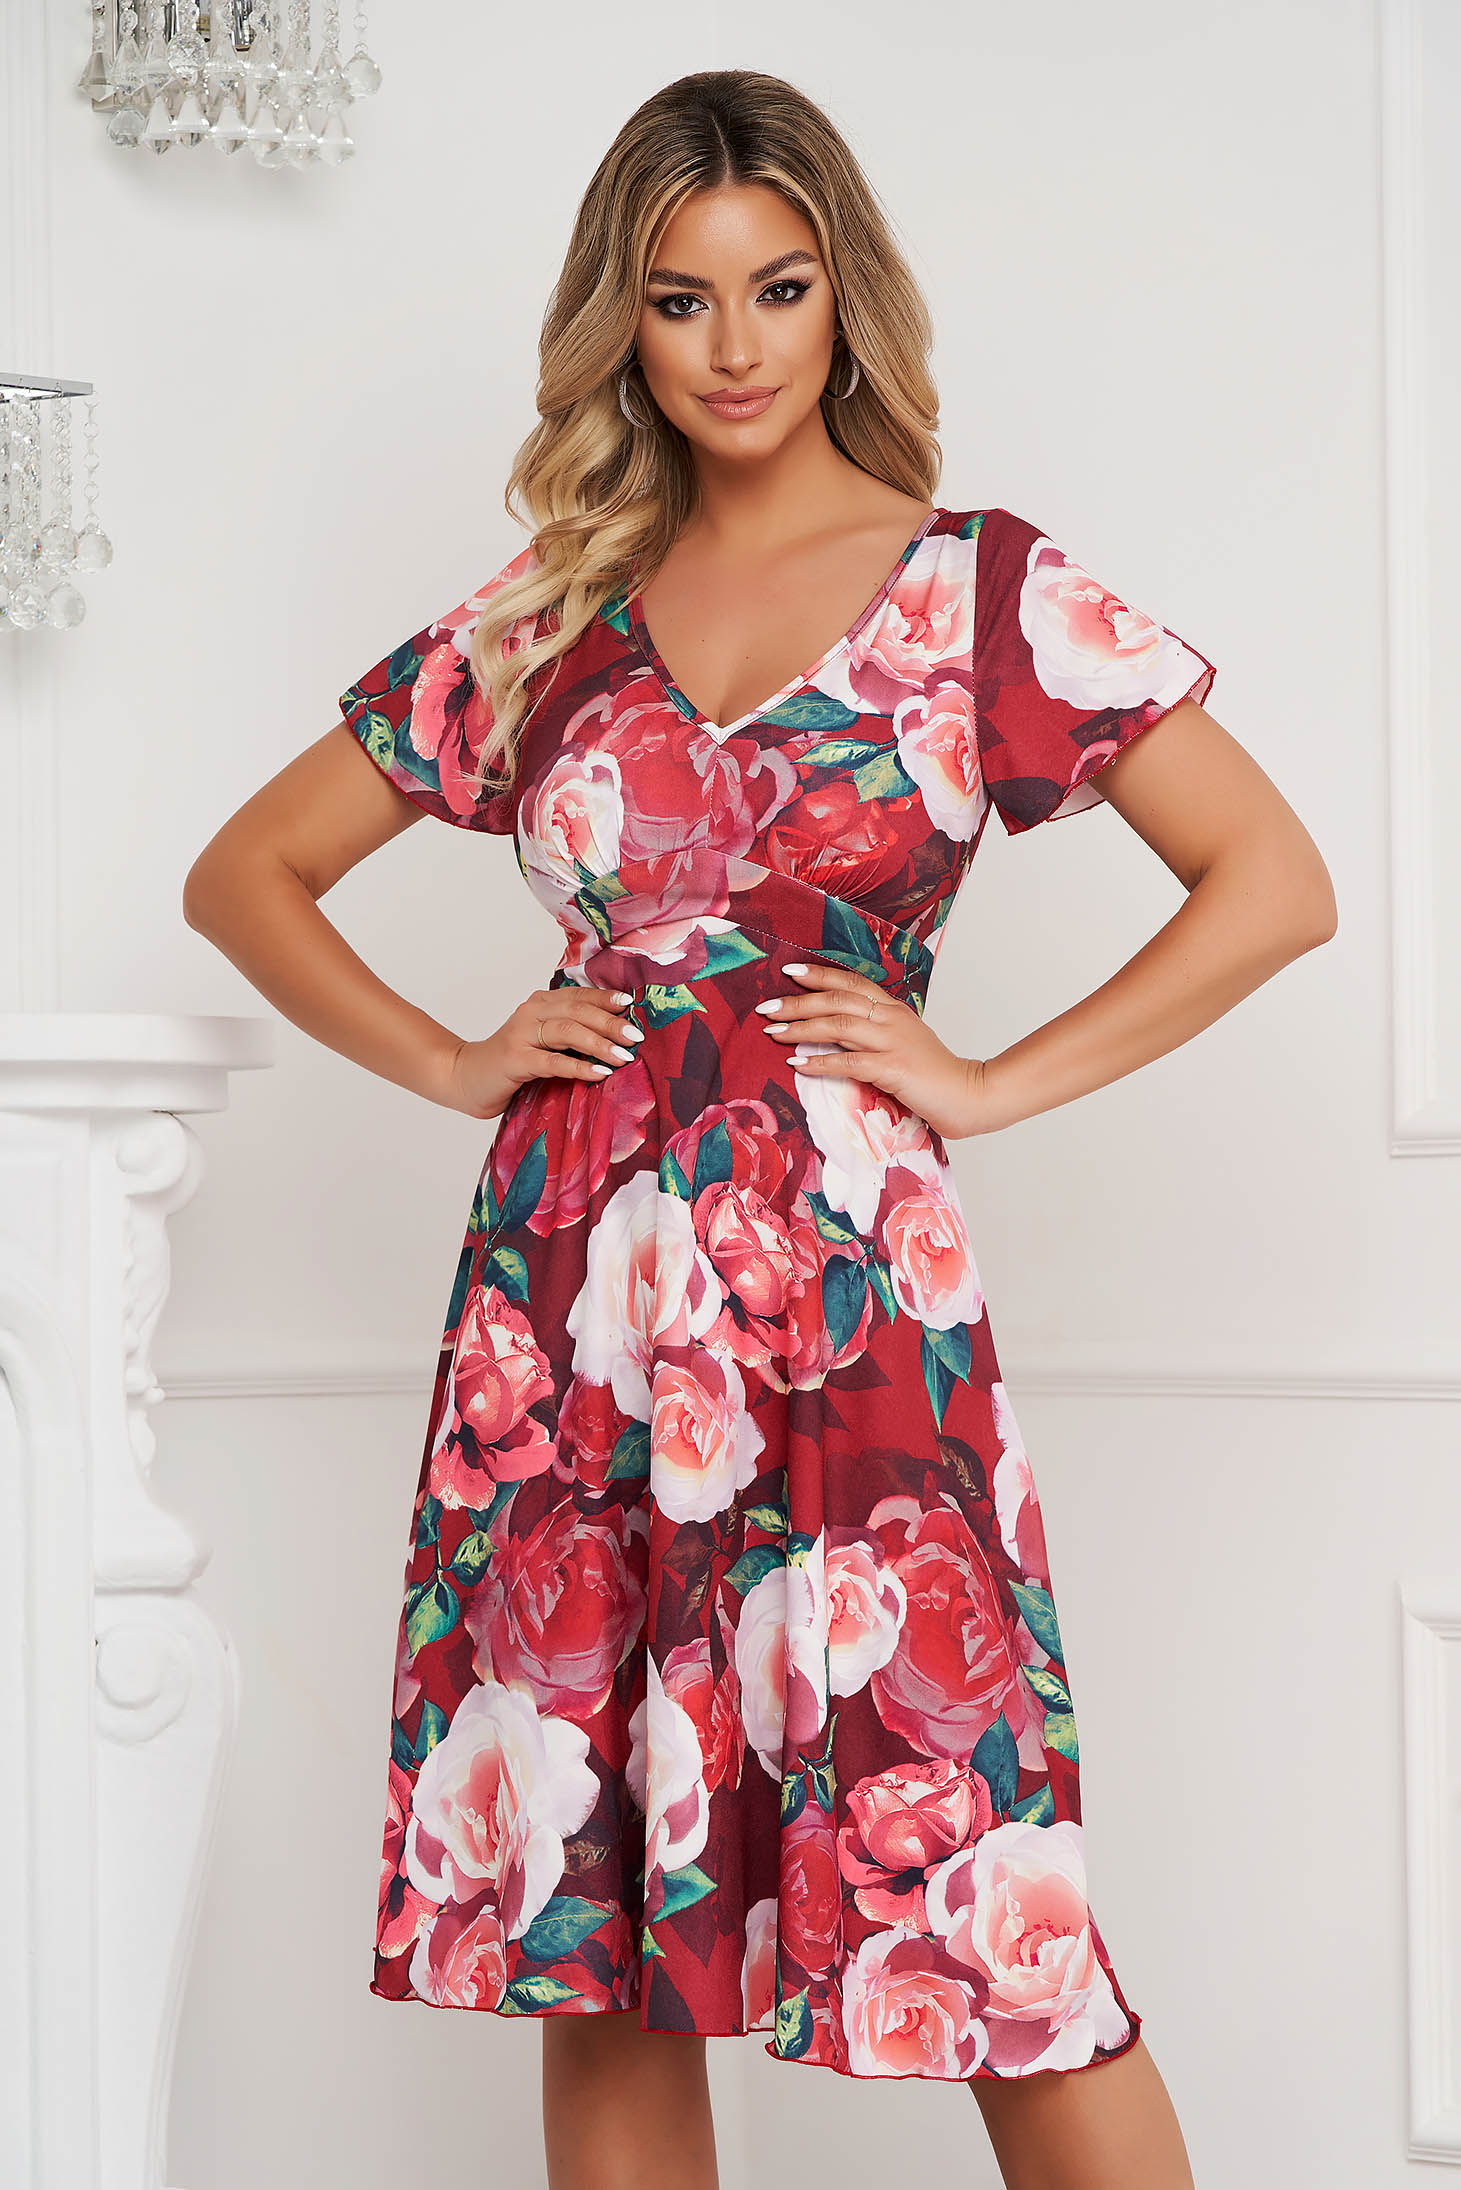 Dress midi cloche short sleeves with floral print thin fabric office